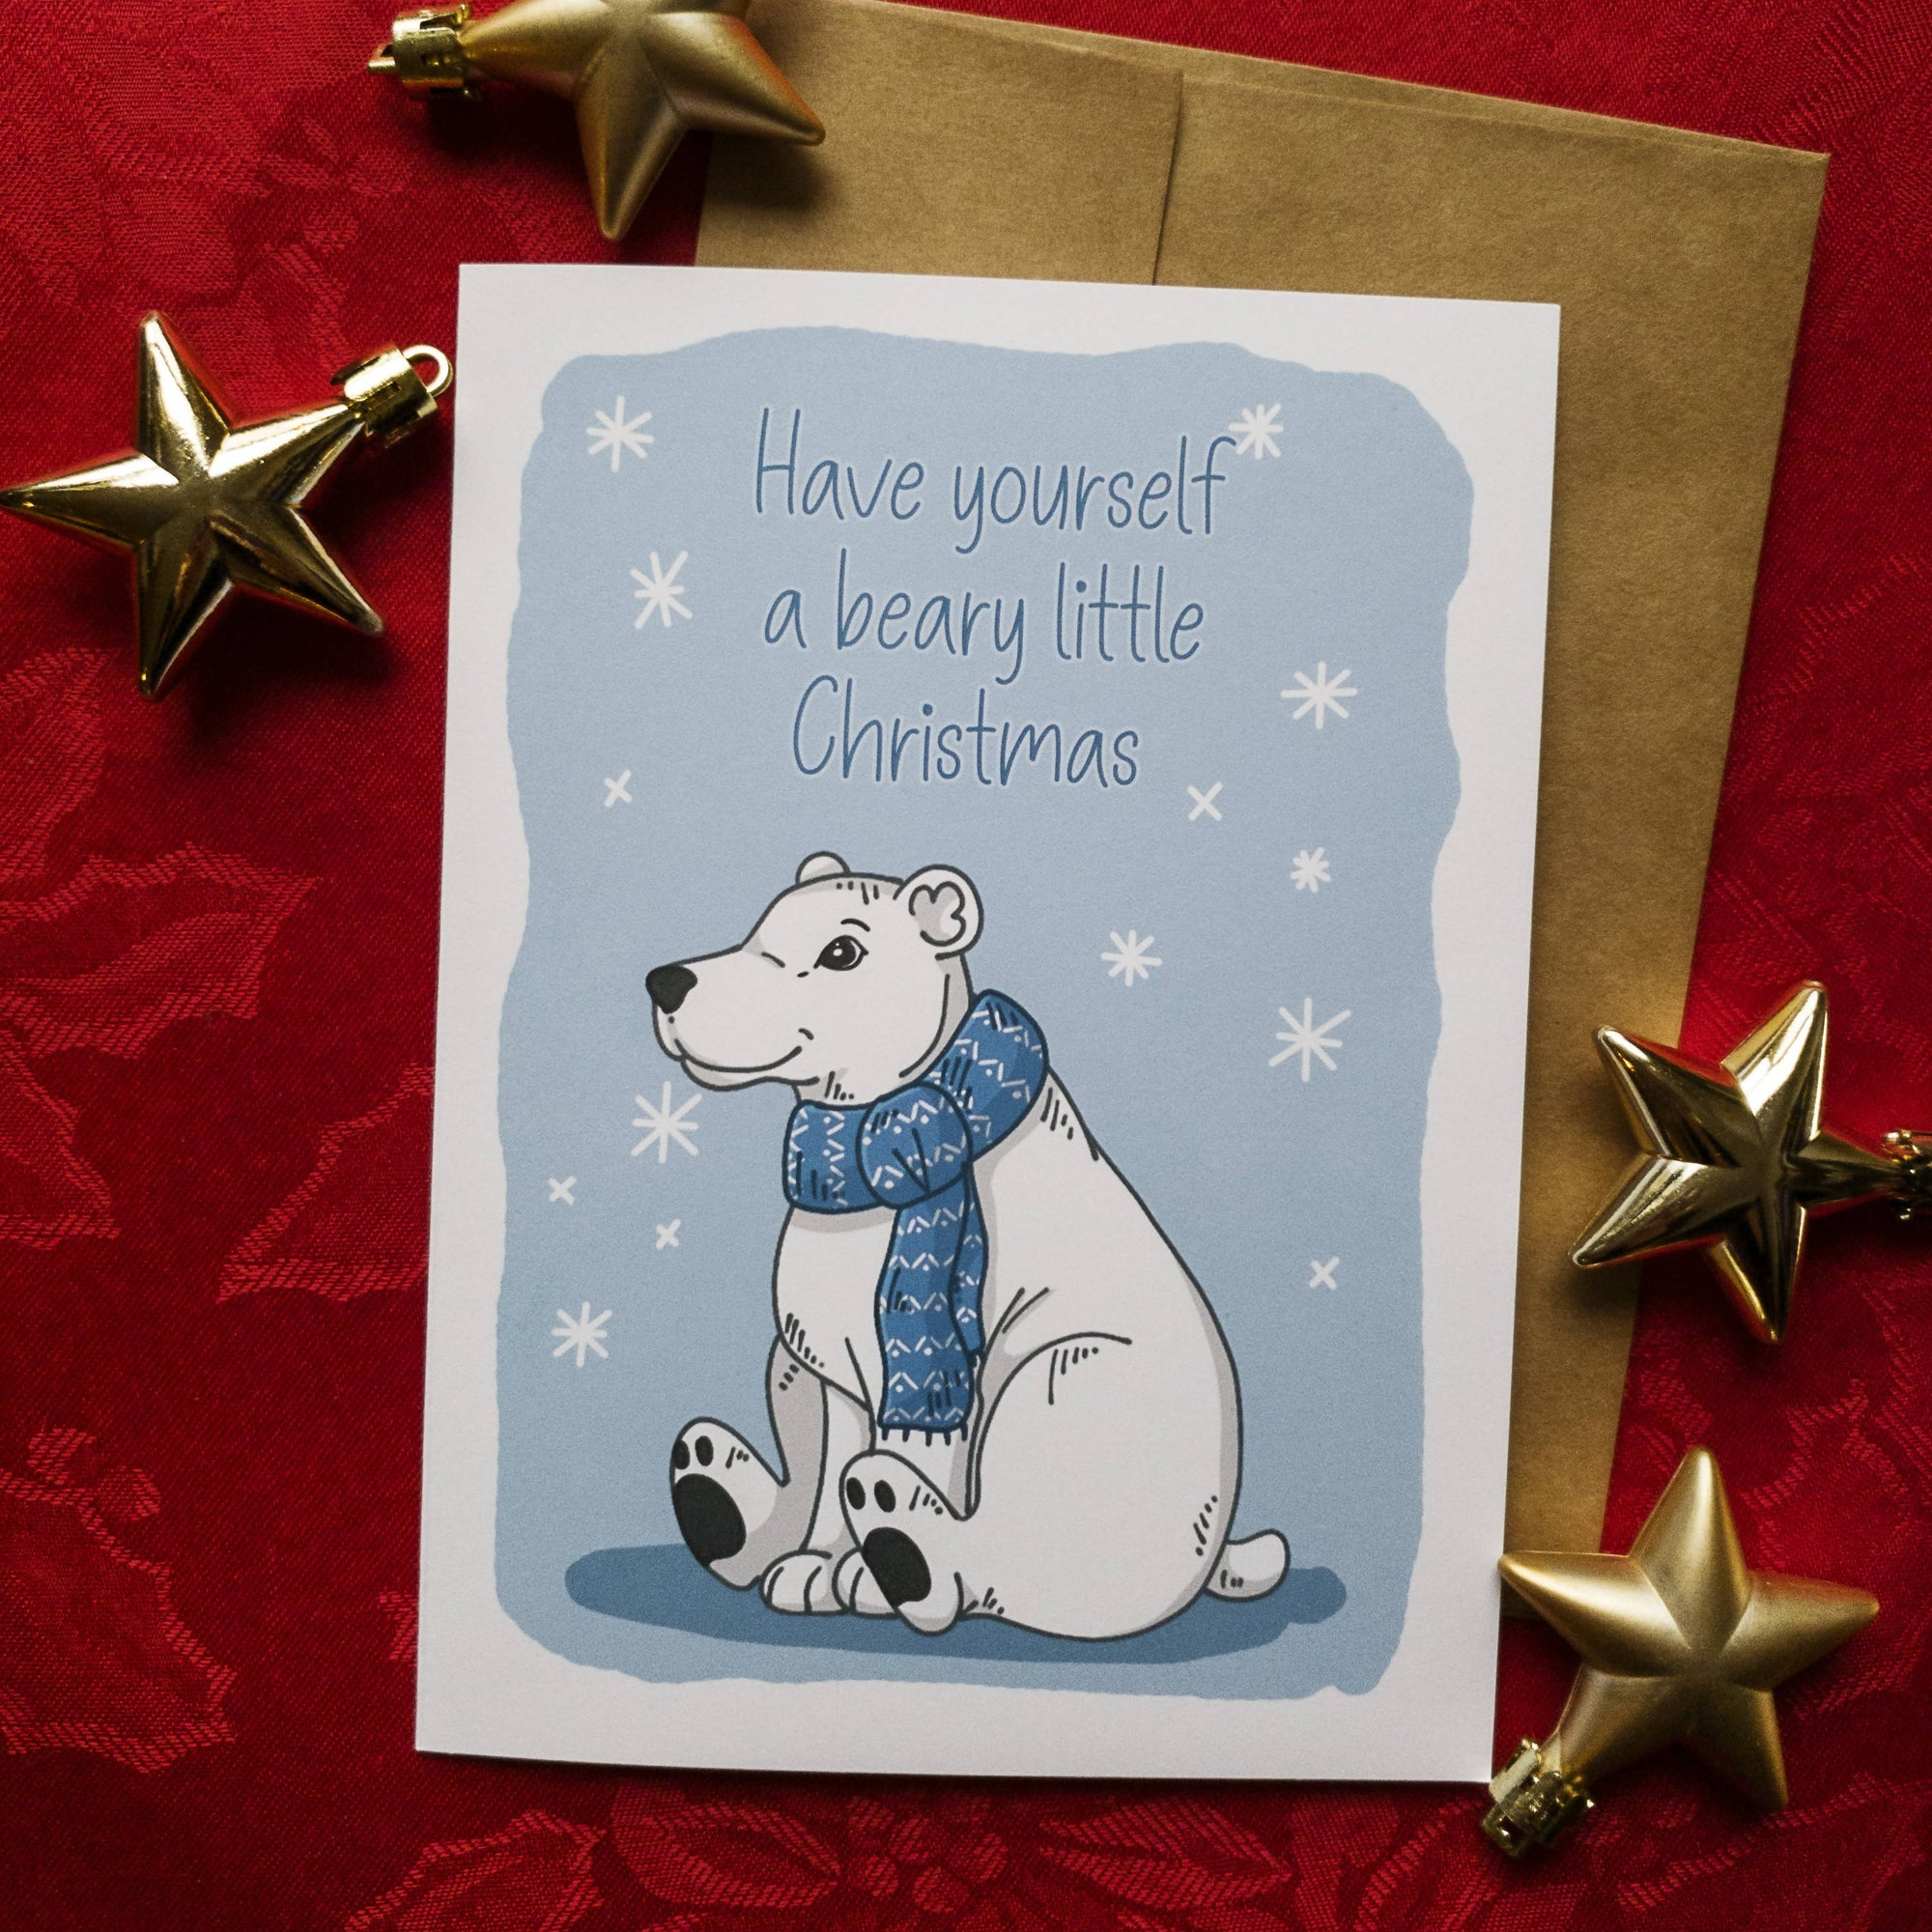 Have Yourself a Beary Little Christmas - Blank Christmas Card